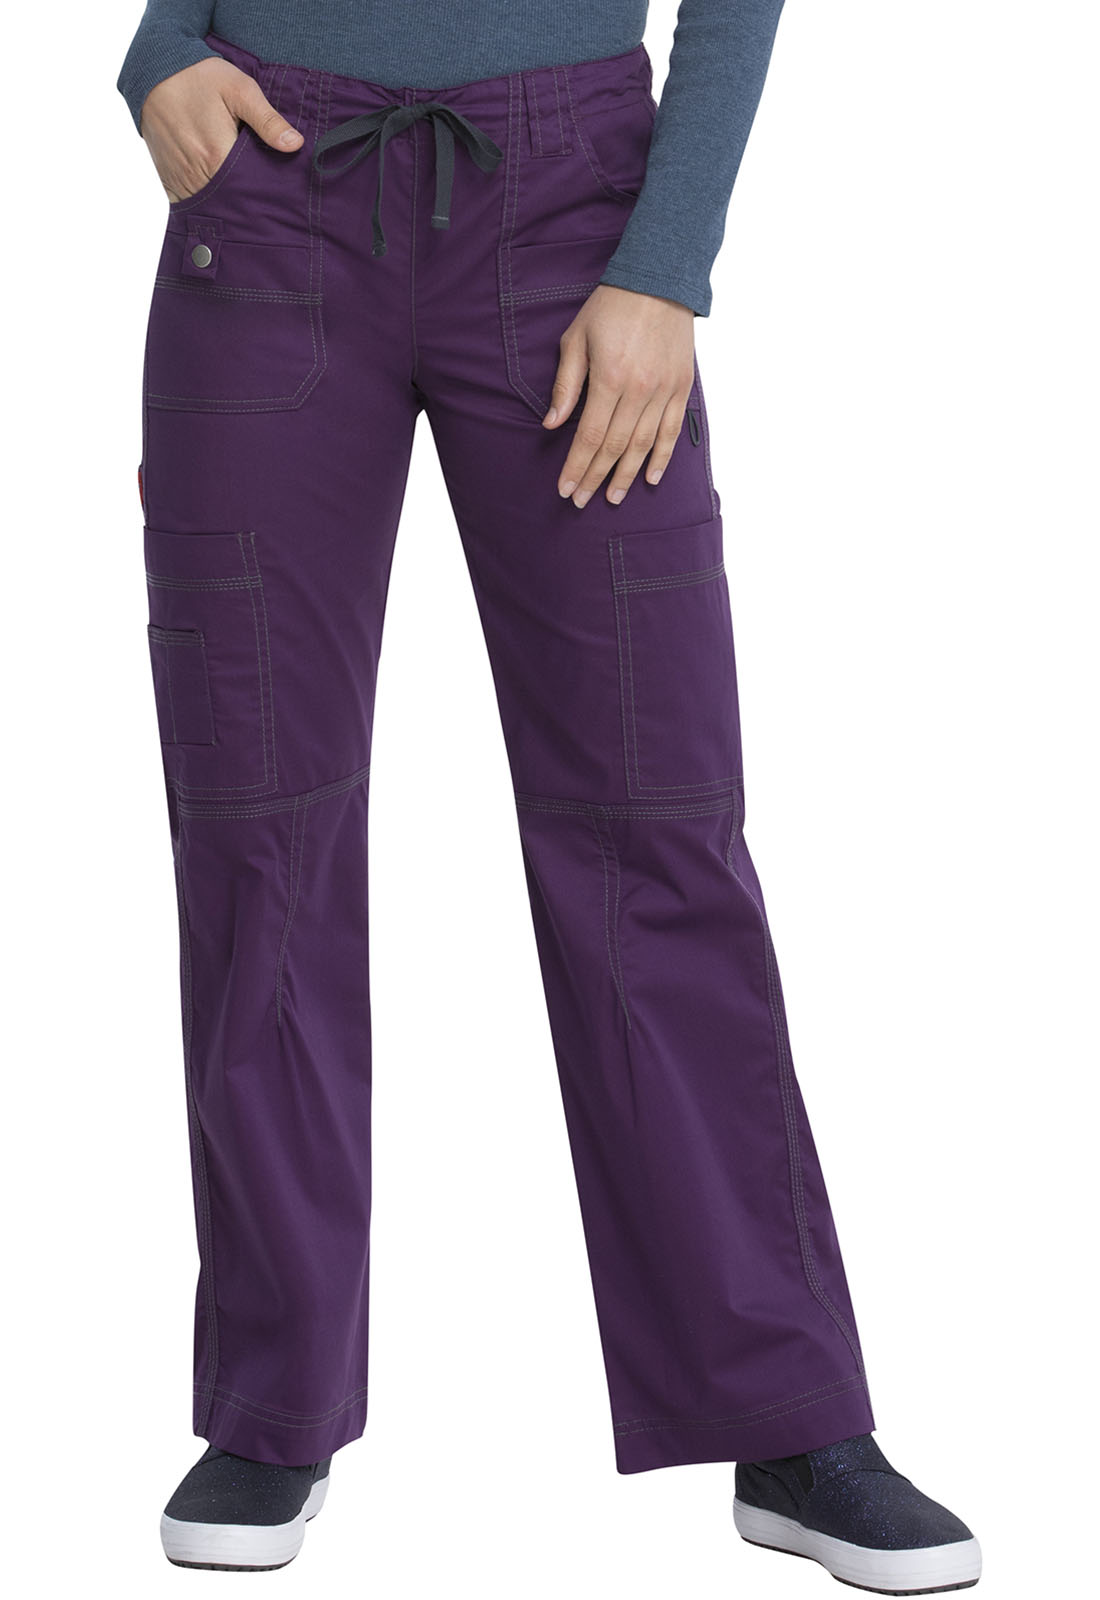 Creative  Womens Beige Slim Fitted Skinny Stretch Low Rise Cargo Pants Combat